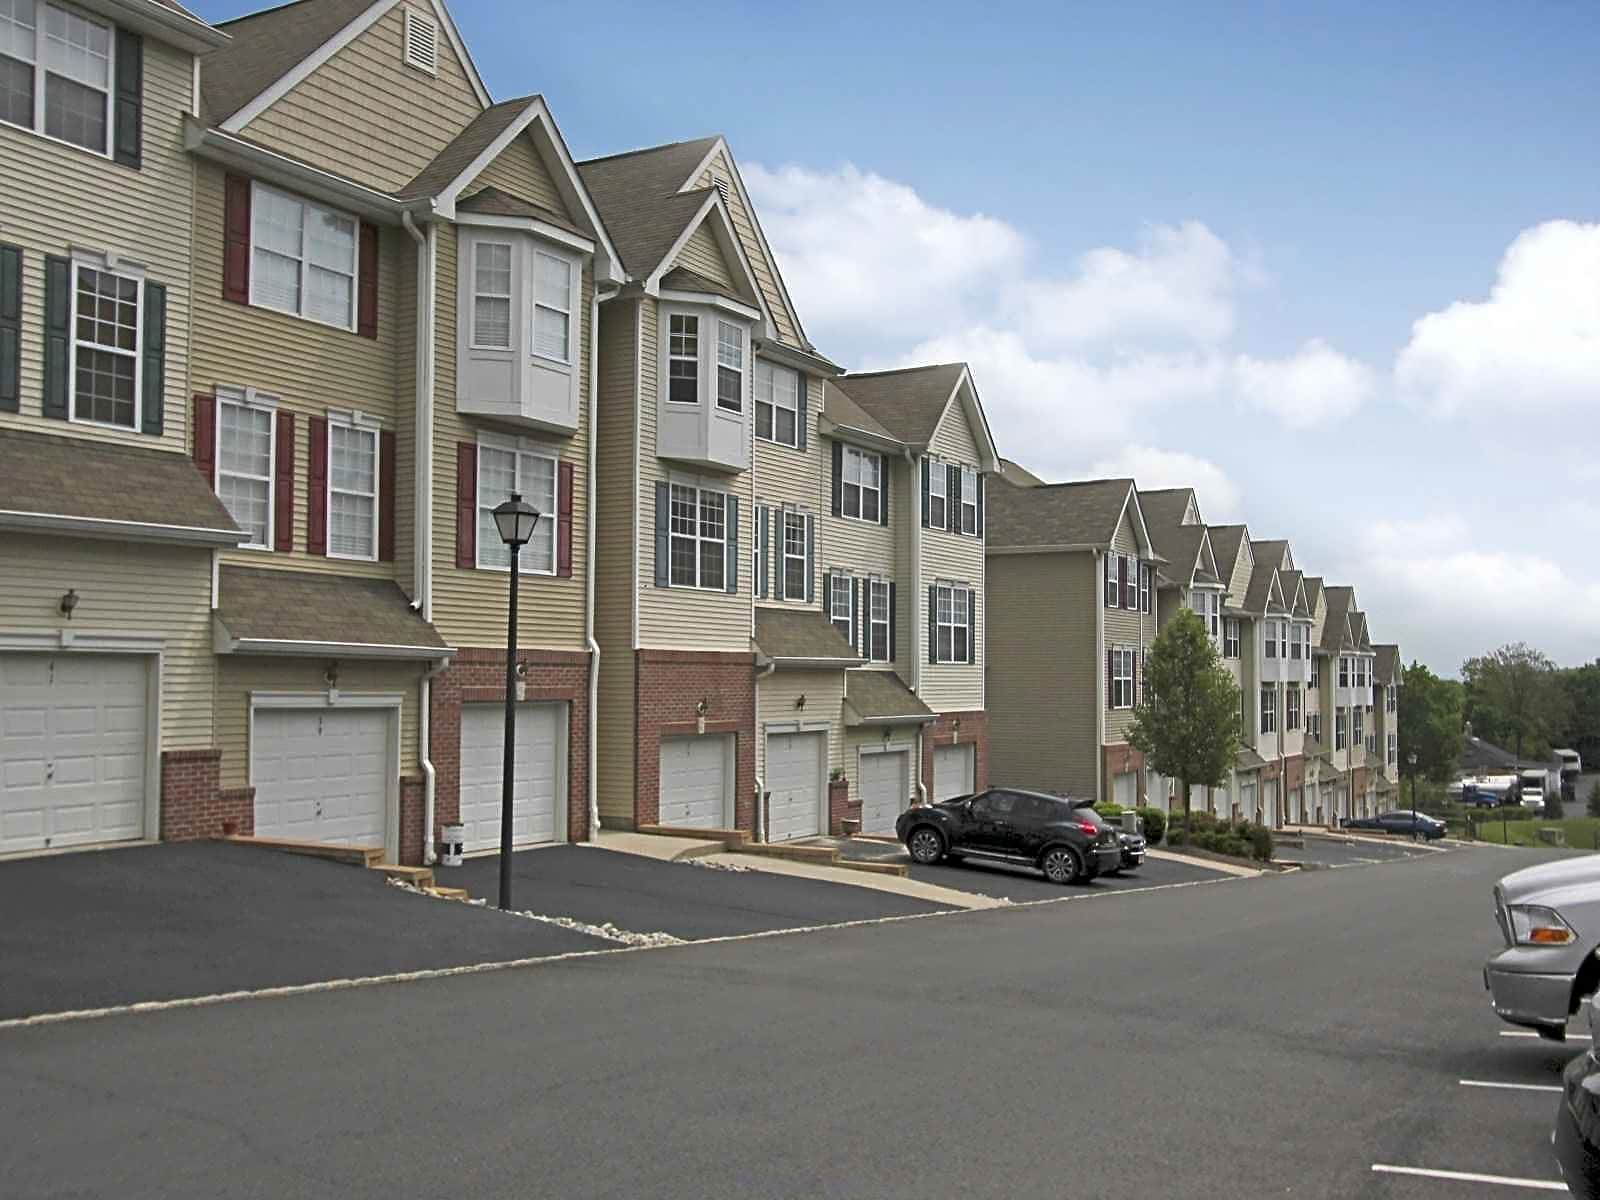 Awesome Lebanon NJ Houses For Rent Apartments